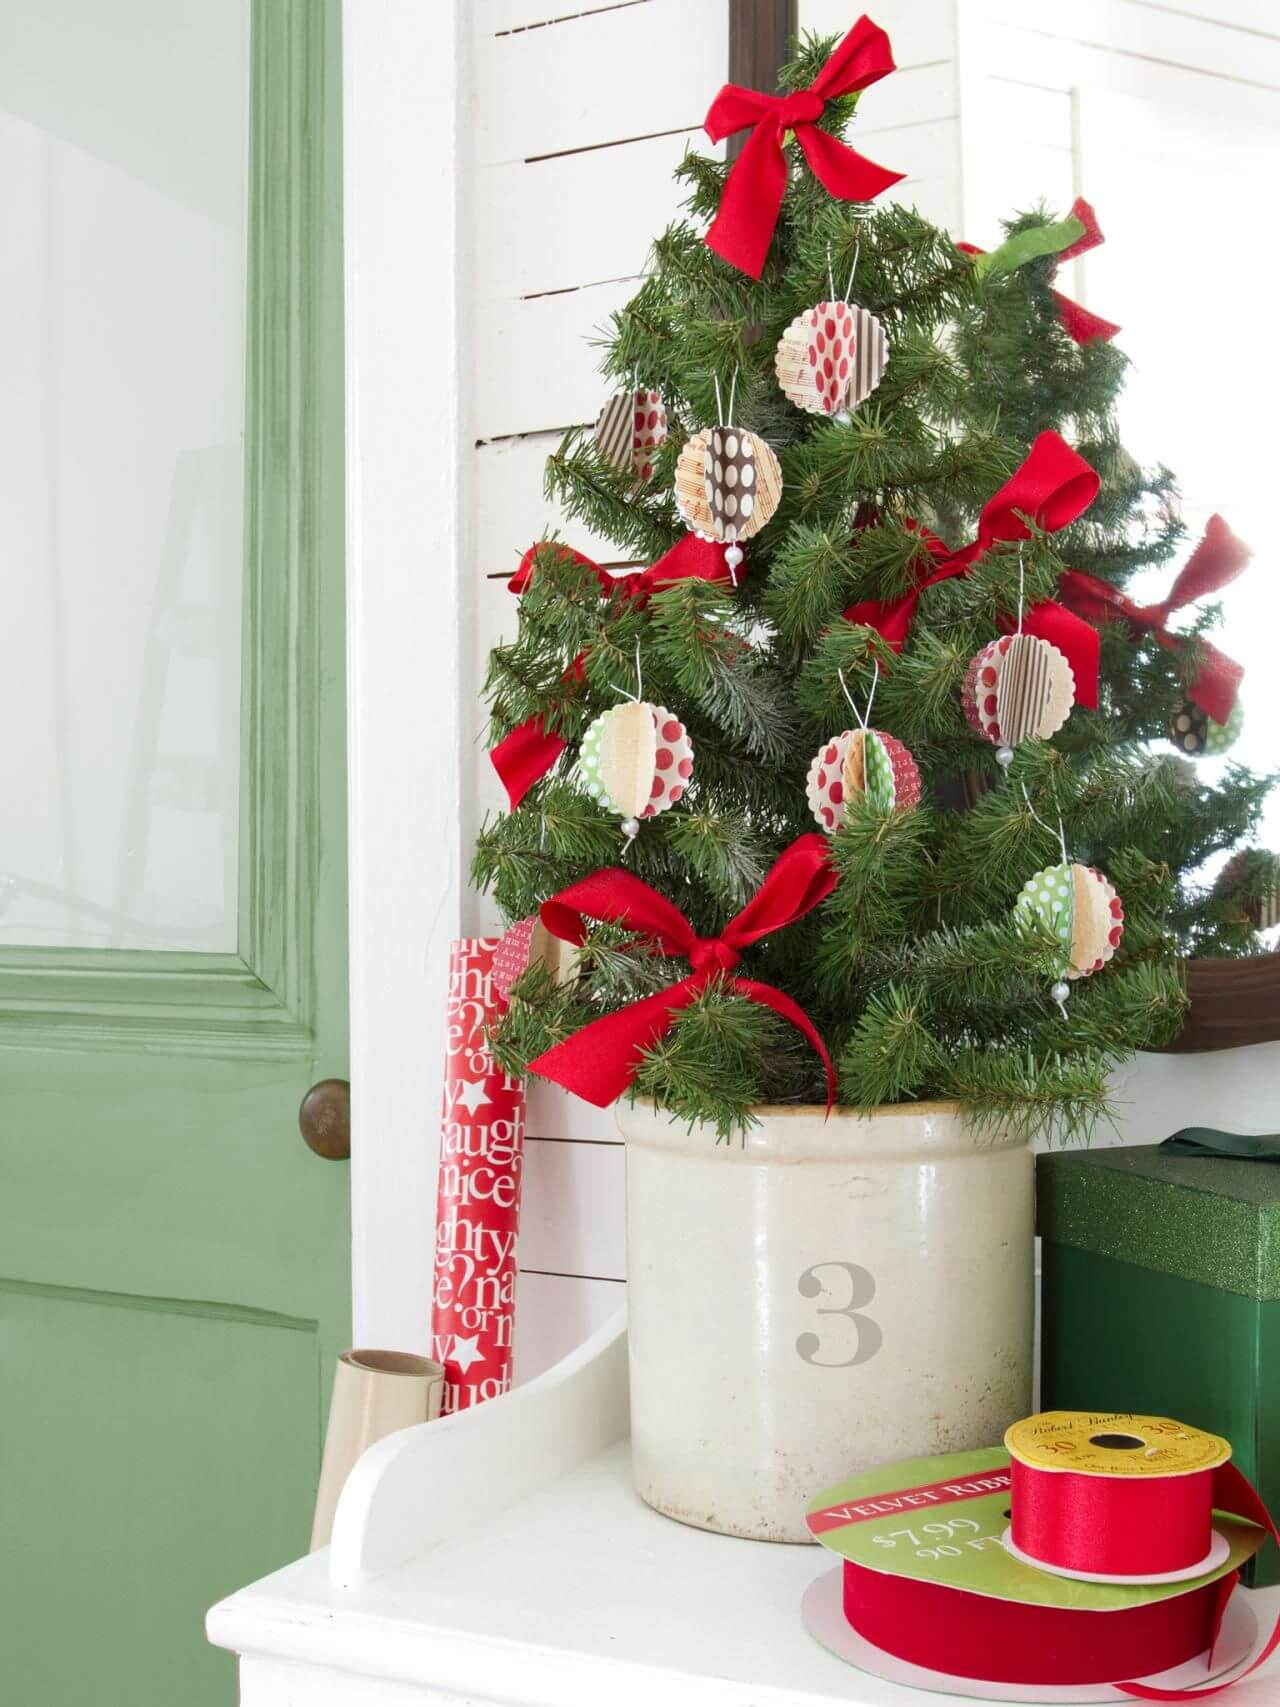 tabletop diy ornament christmas tree - Outdoor Christmas Tree Decorations